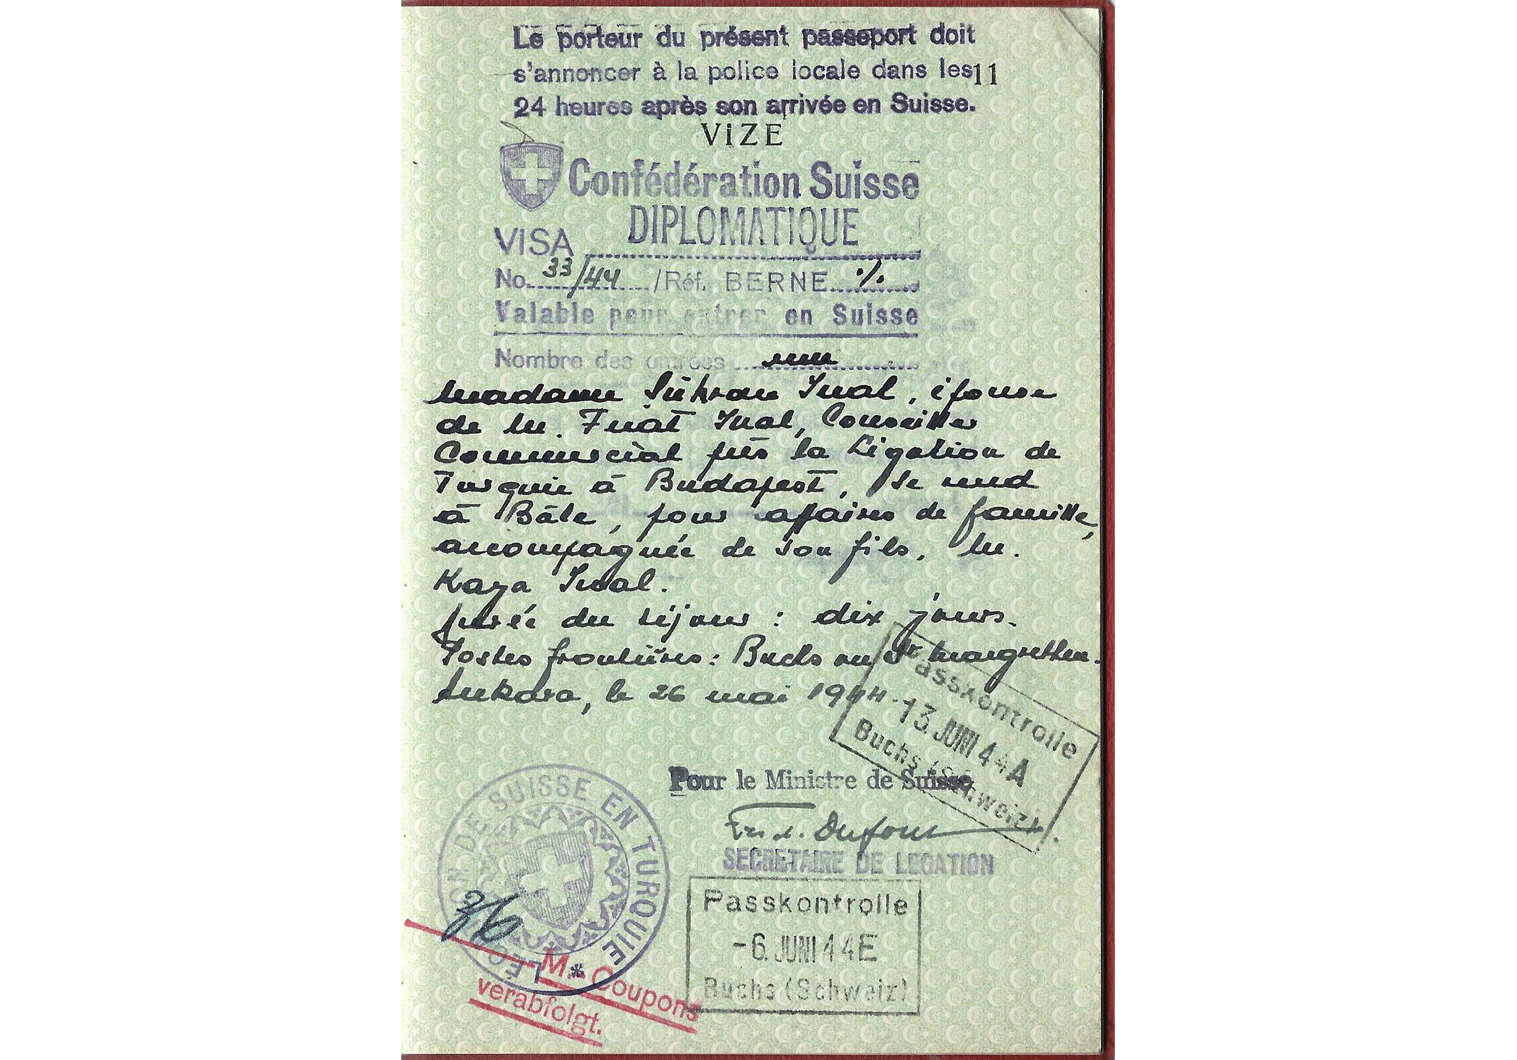 WW2 Diplomatic visa.